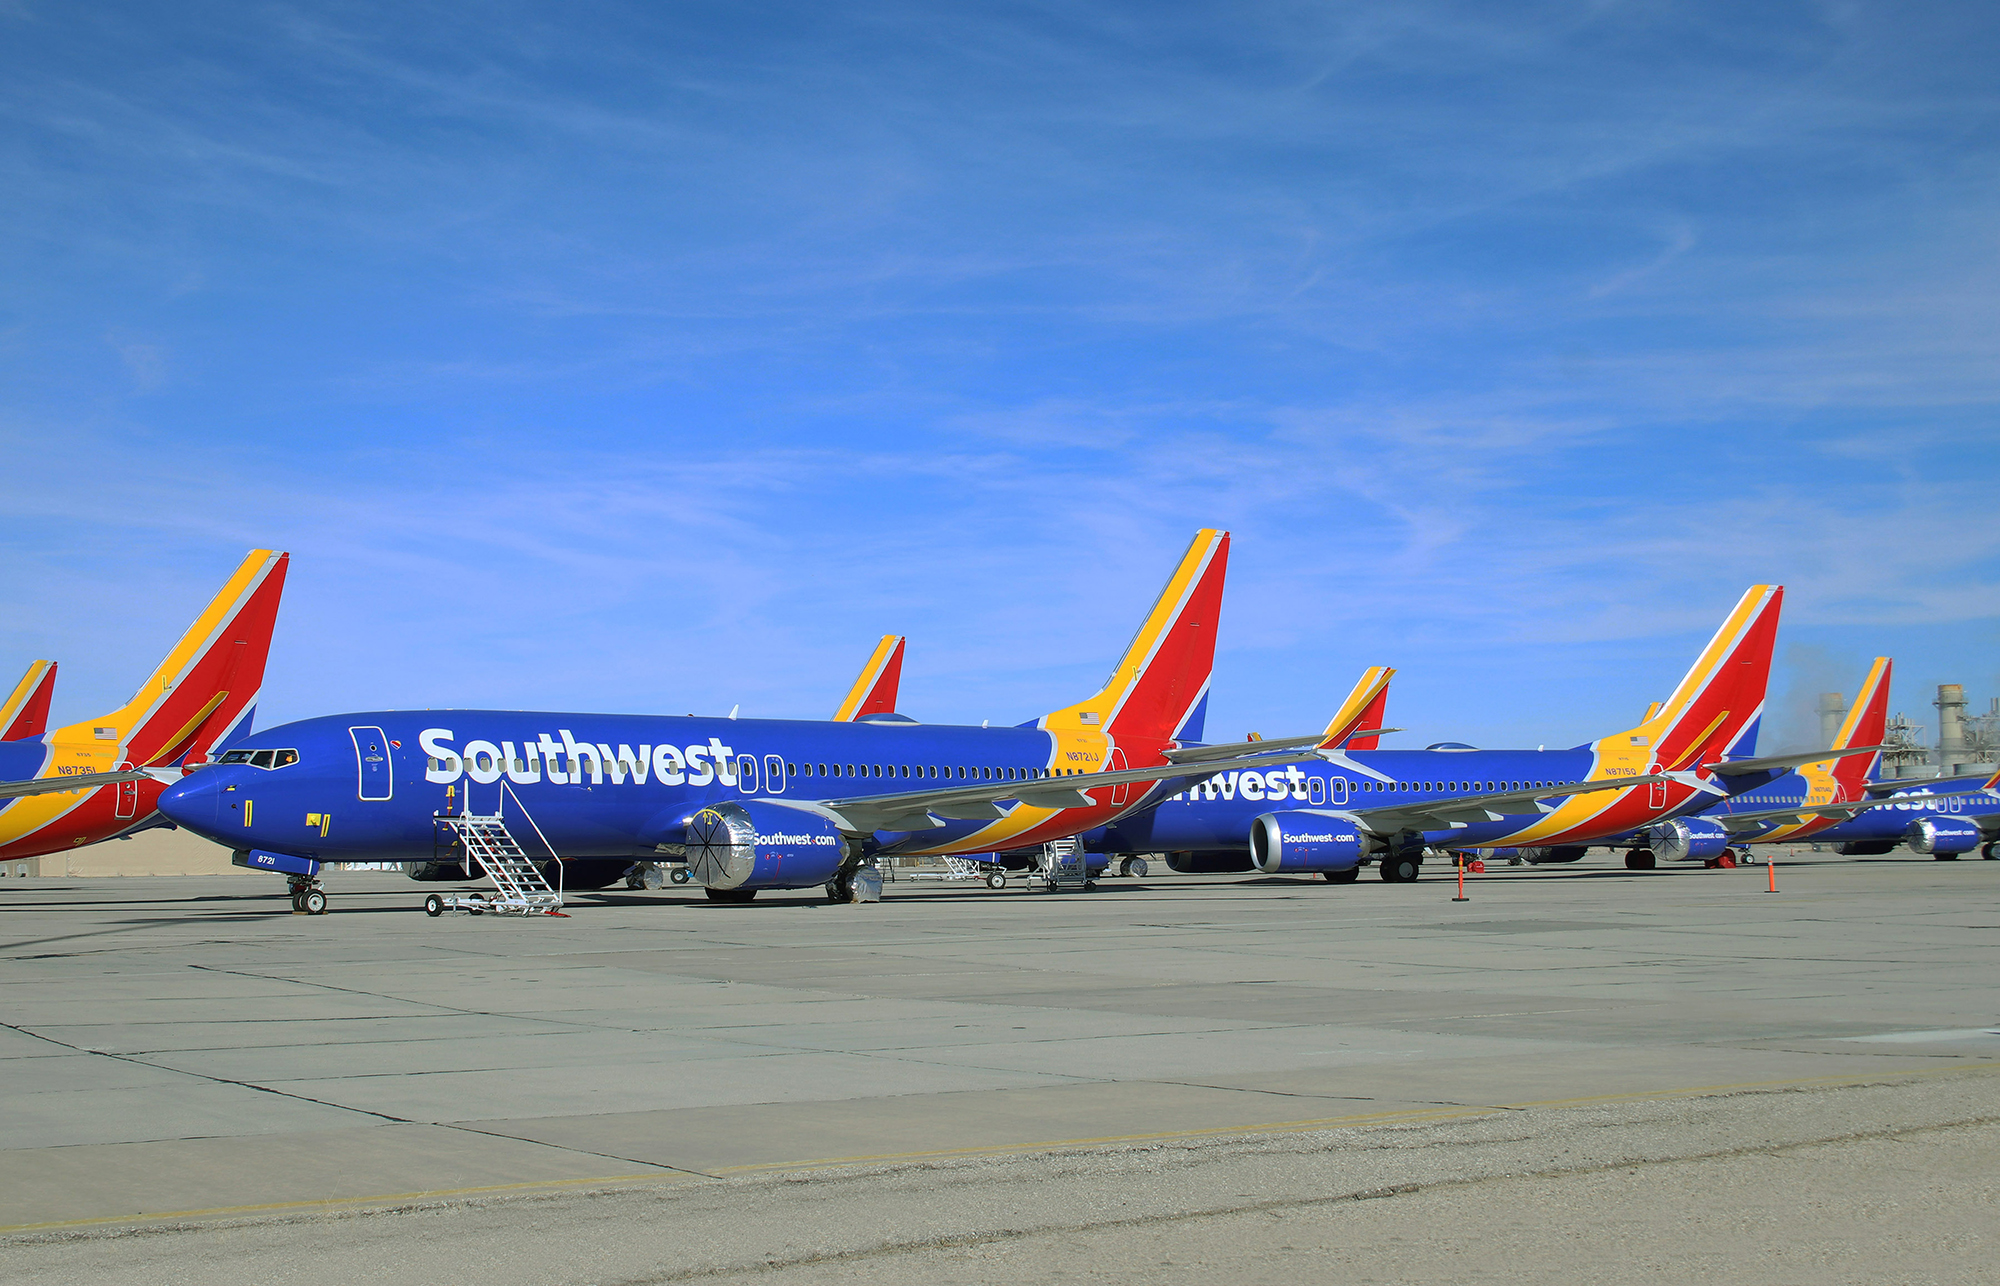 Boeing's 737 Max gets approval to fly passengers again 6